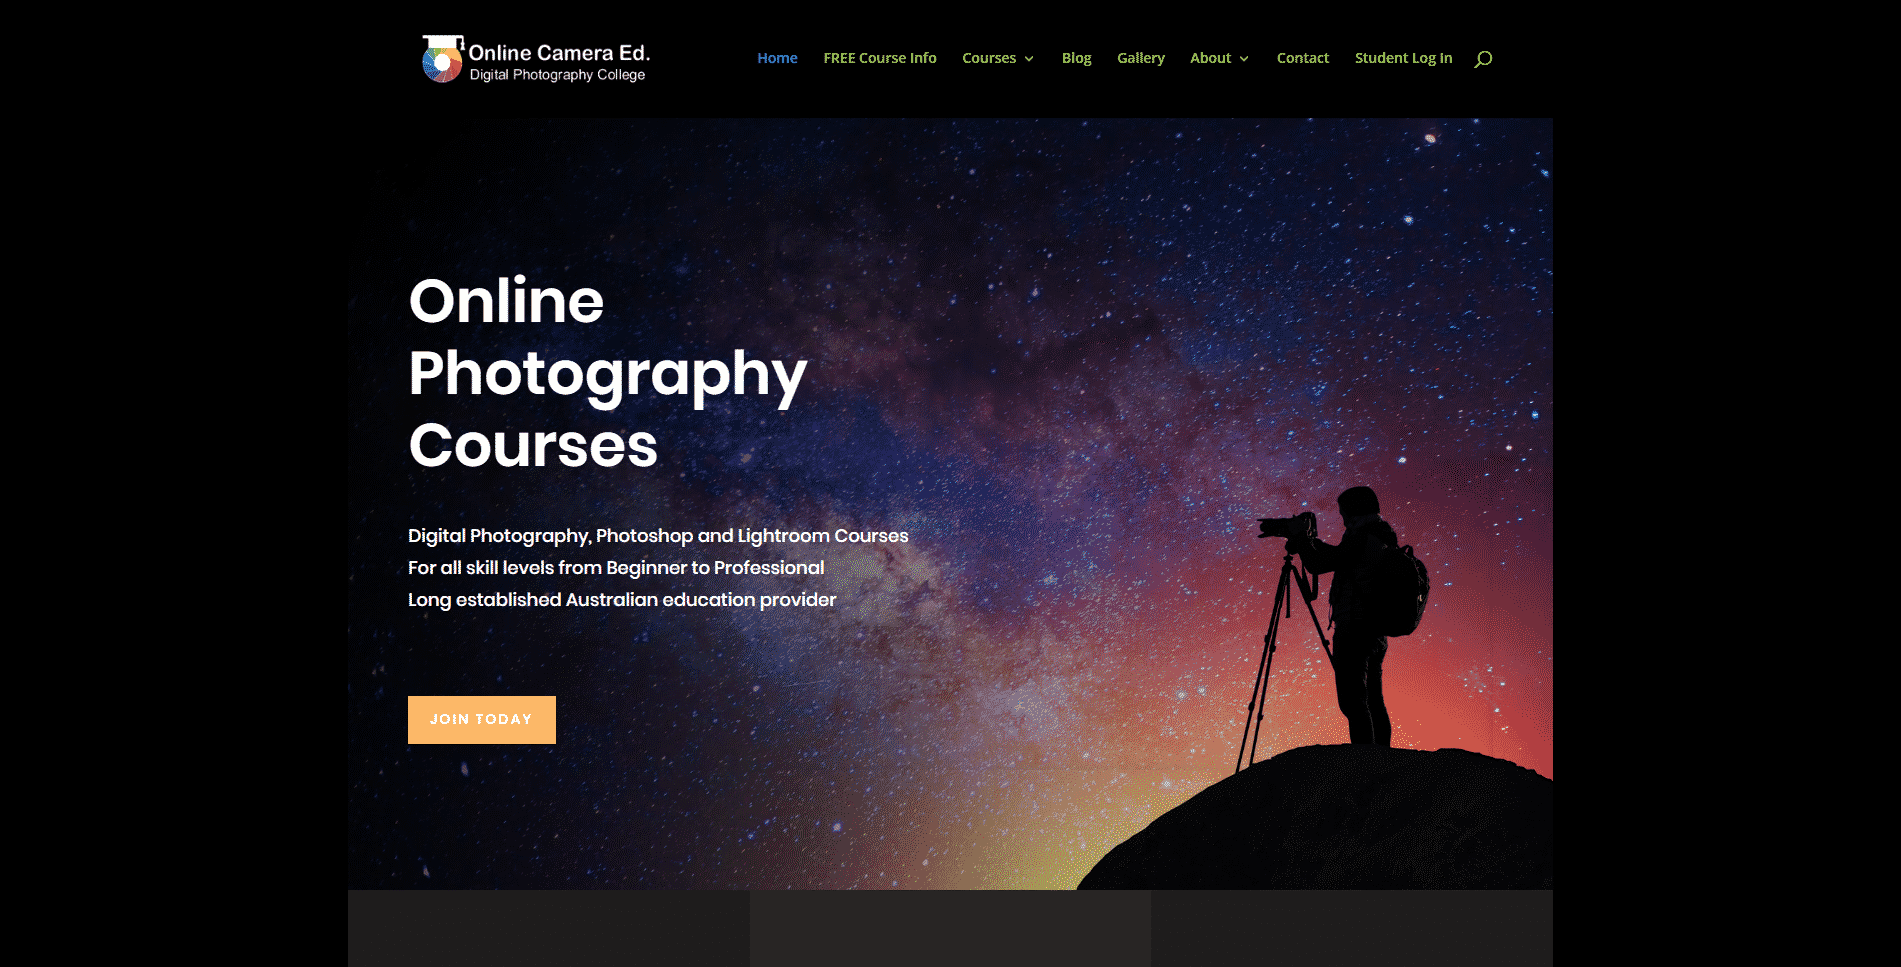 Onlinecameraed.com Learn Photography Lessons Online